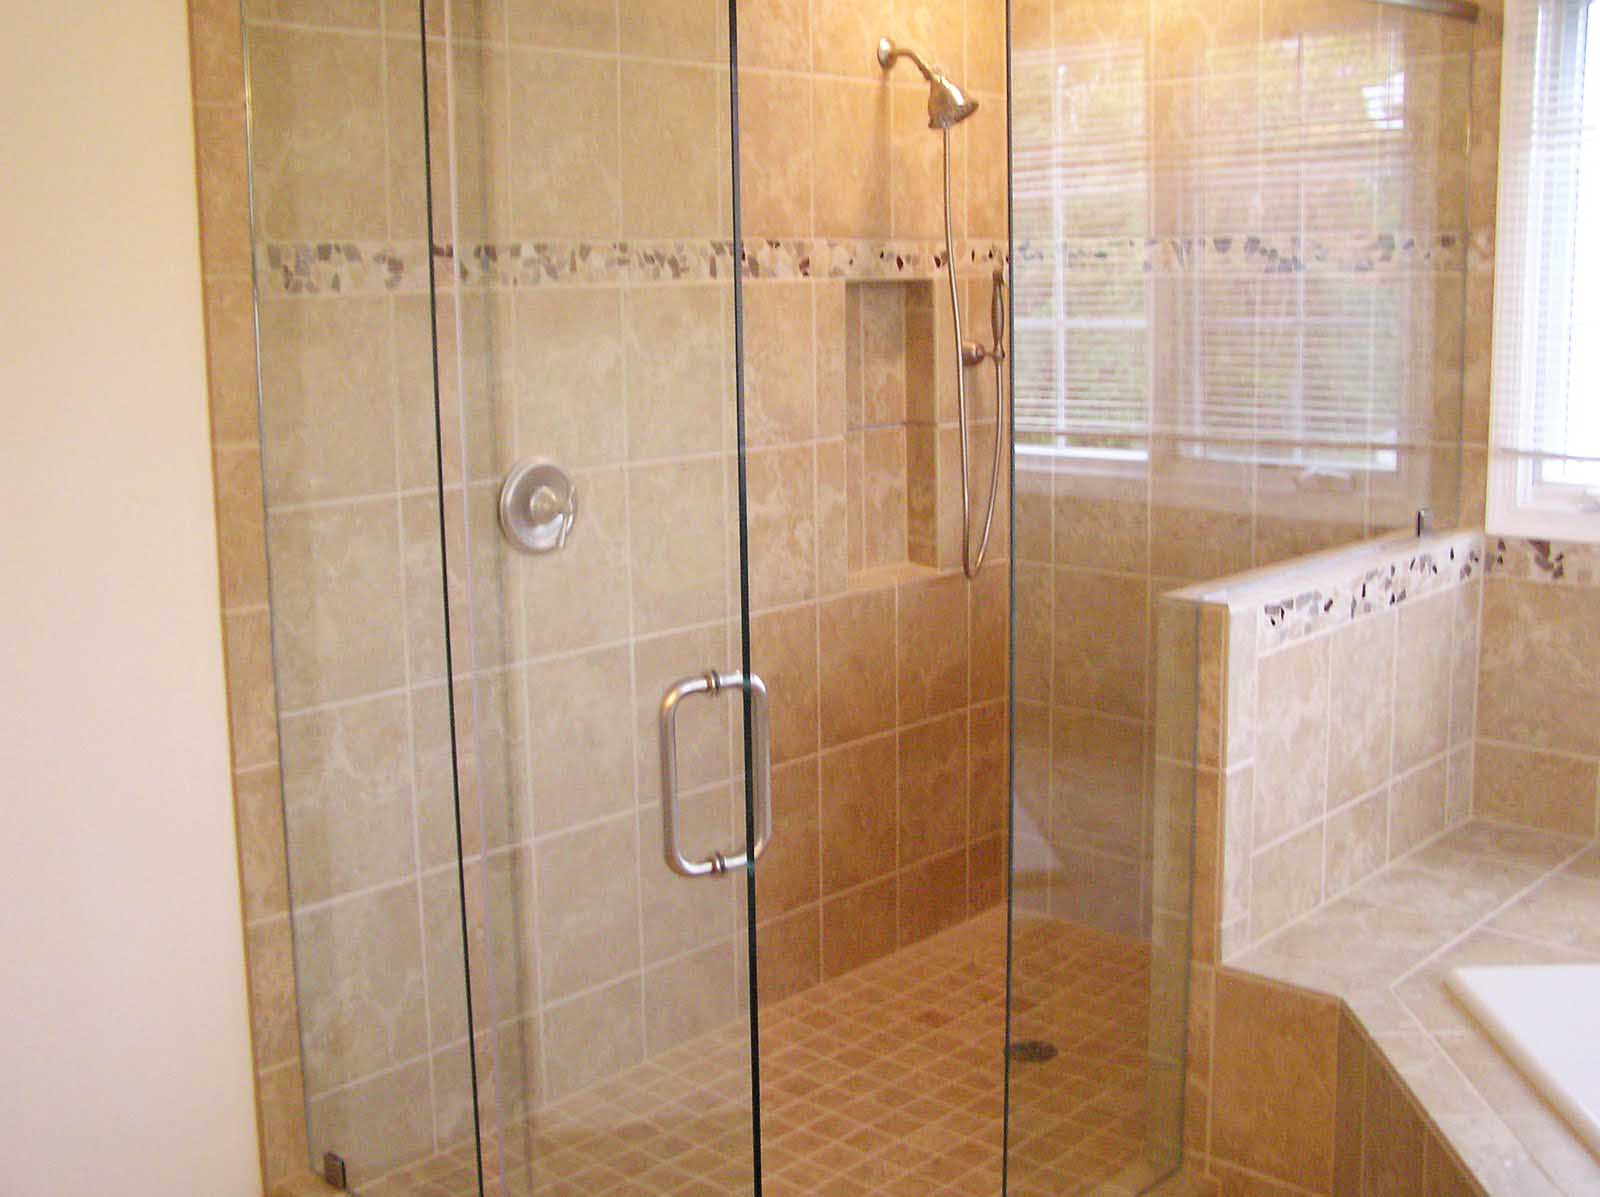 Modern bathroom showers - Fashionable Bathroom Shower Tile Ideas 1